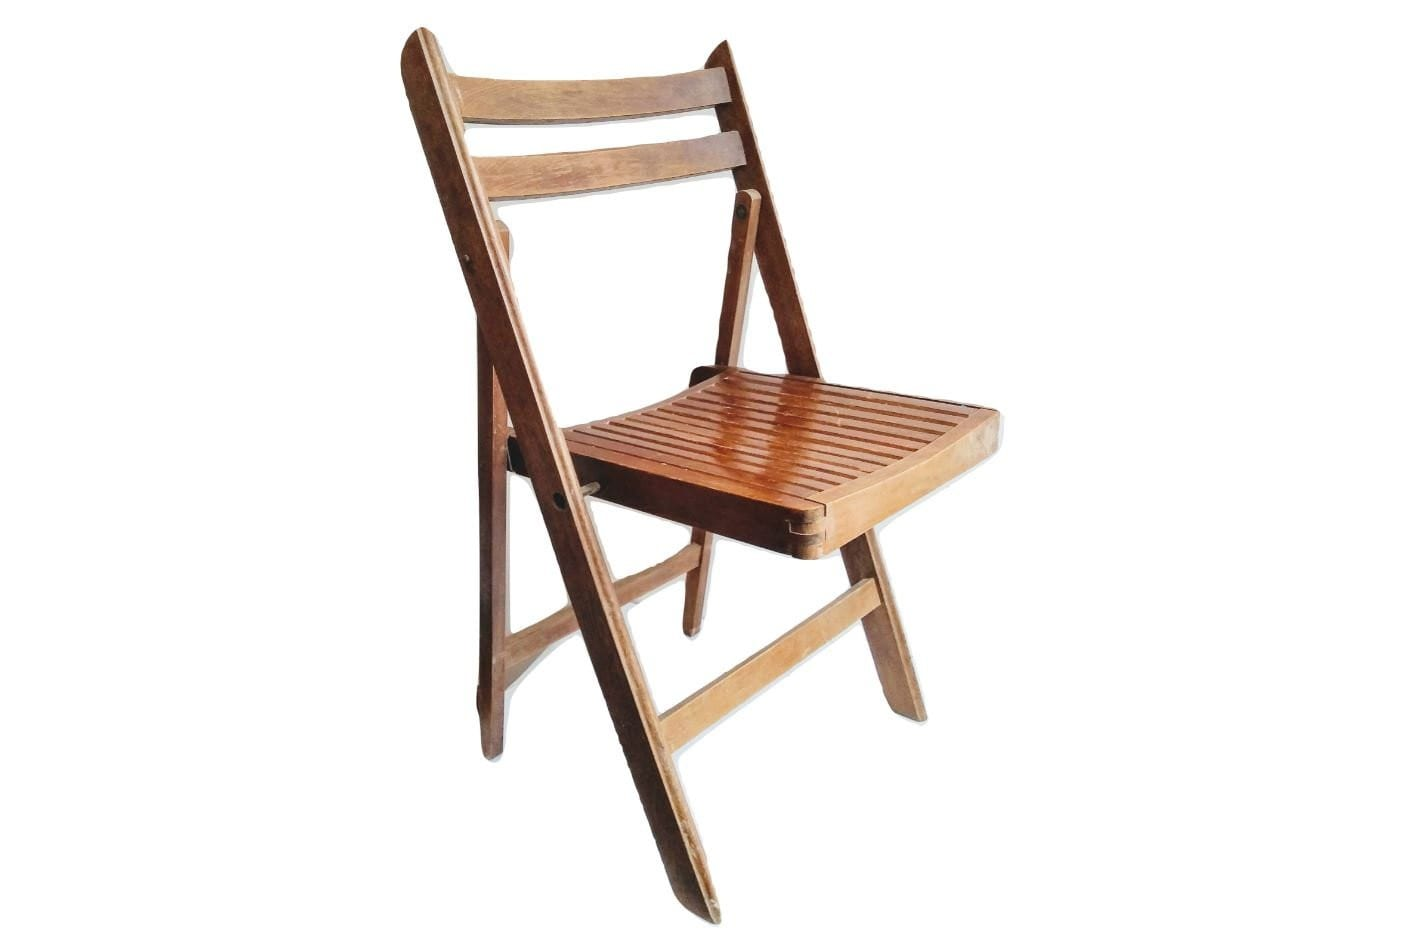 French Vintage Folding Chair